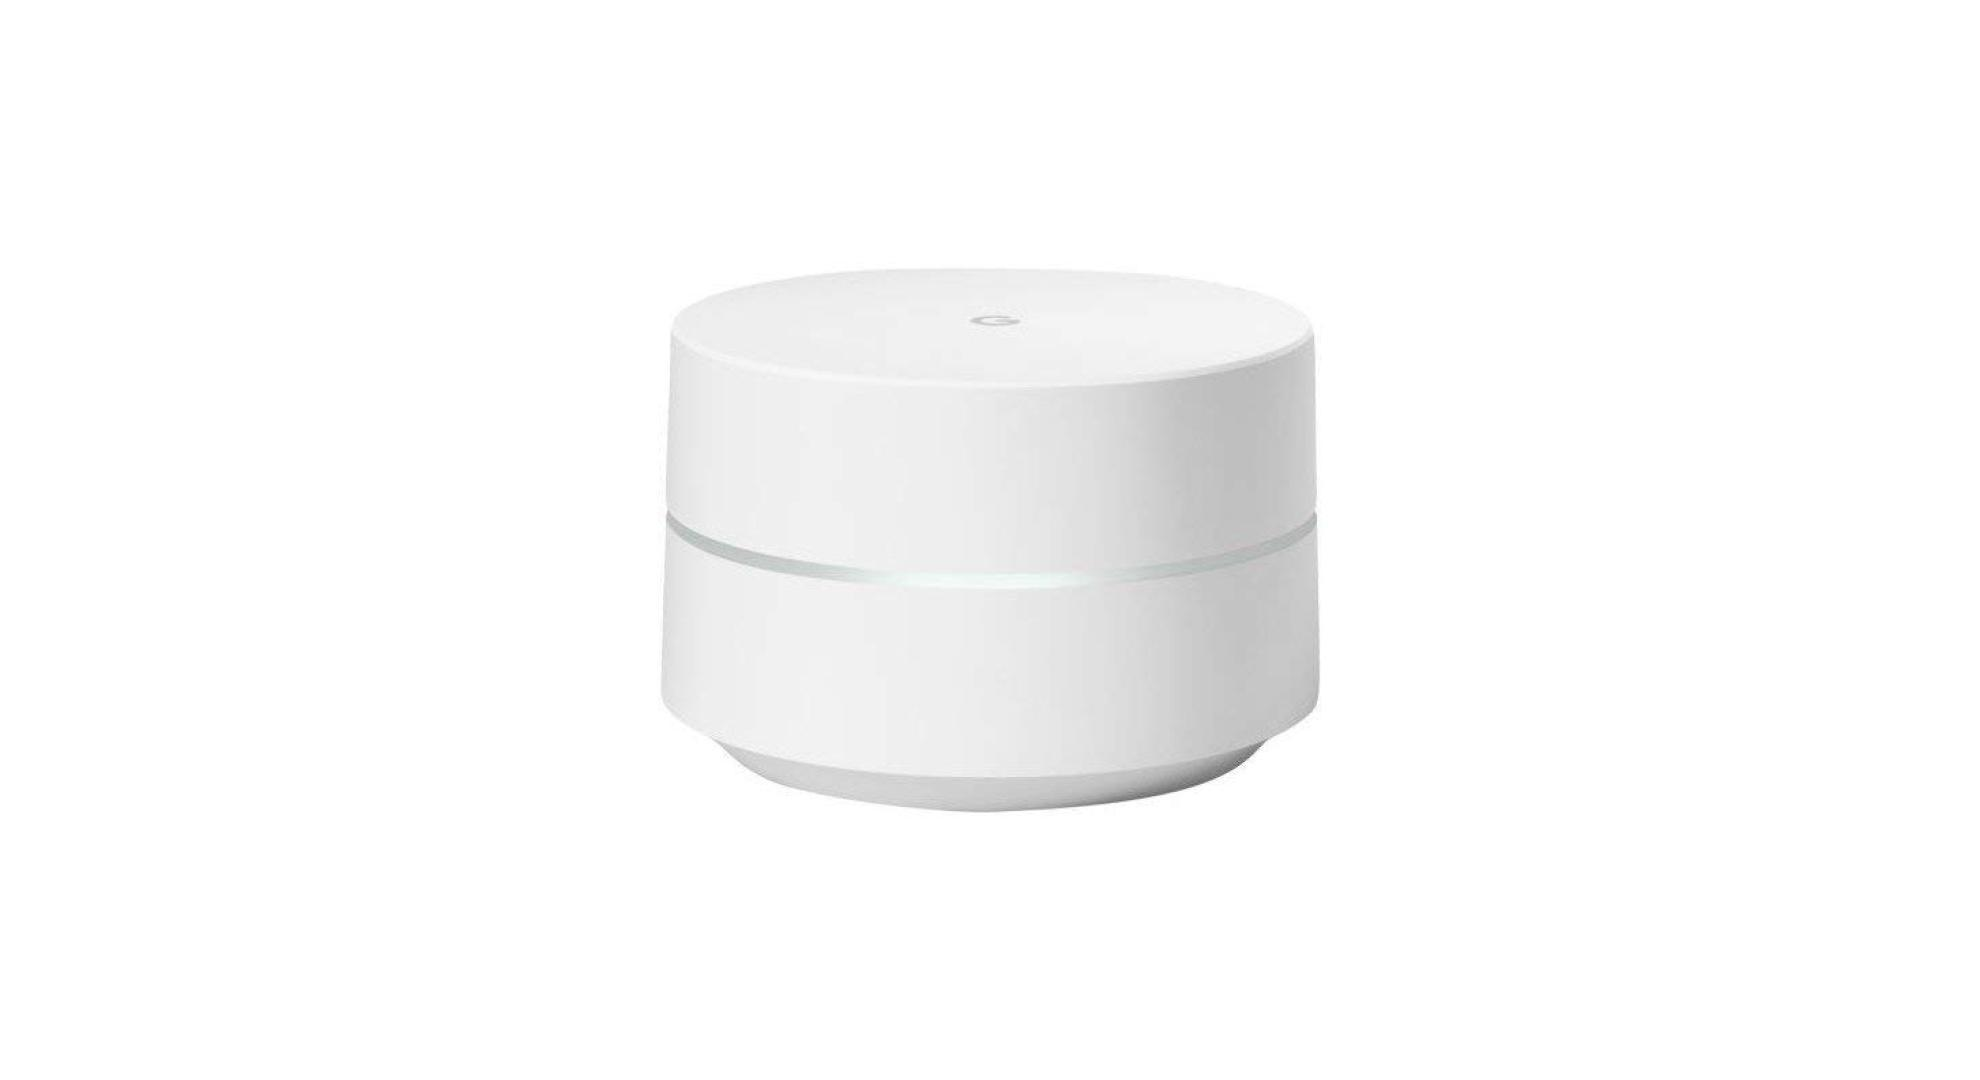 🔥 Black Friday : le Google WiFi passe sous la barre des 100 euros sur Amazon